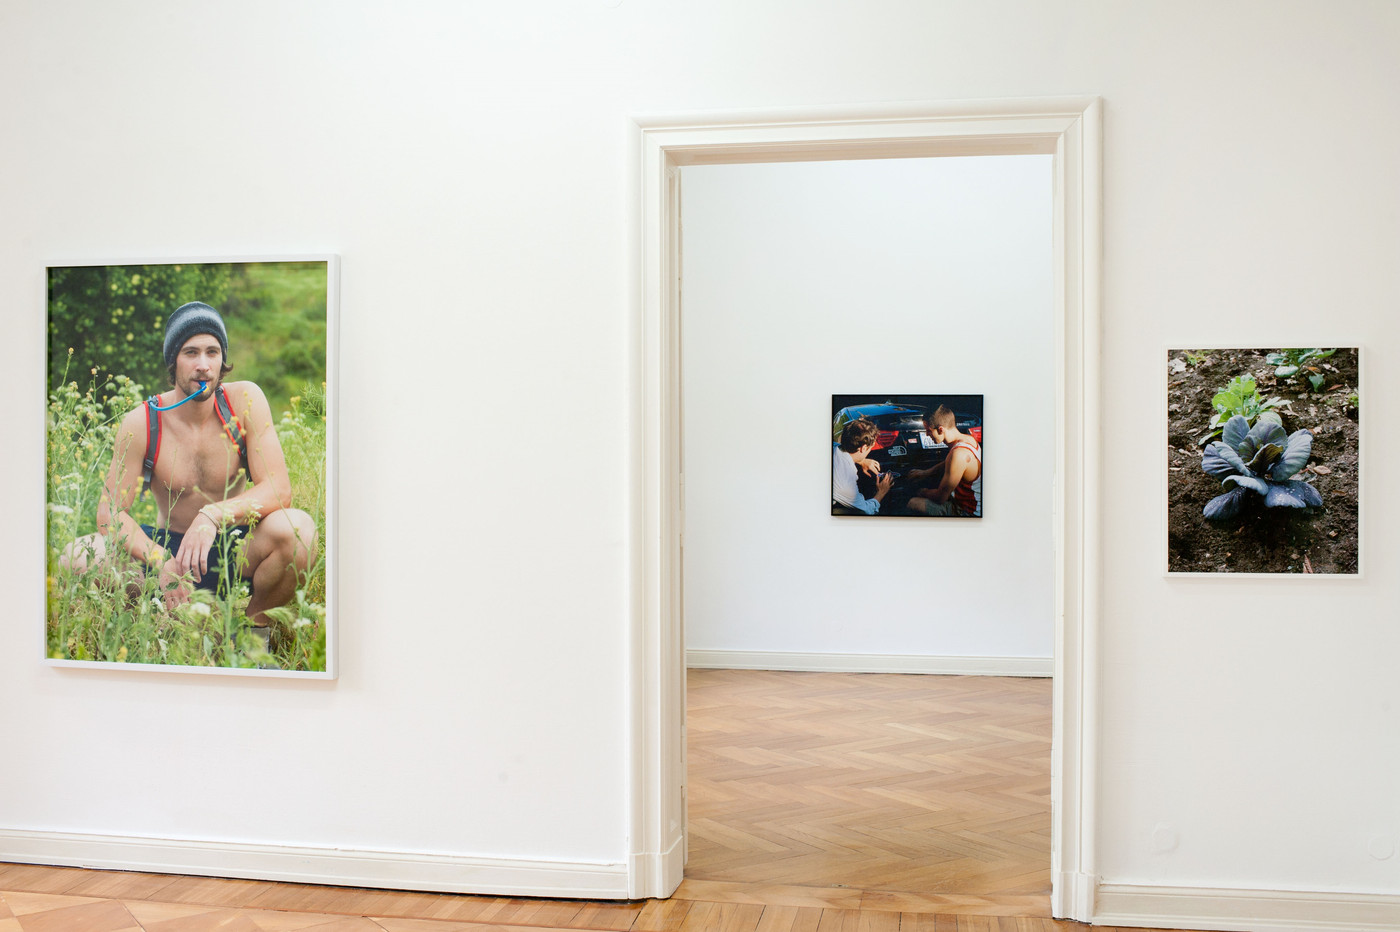 Installation_View_01